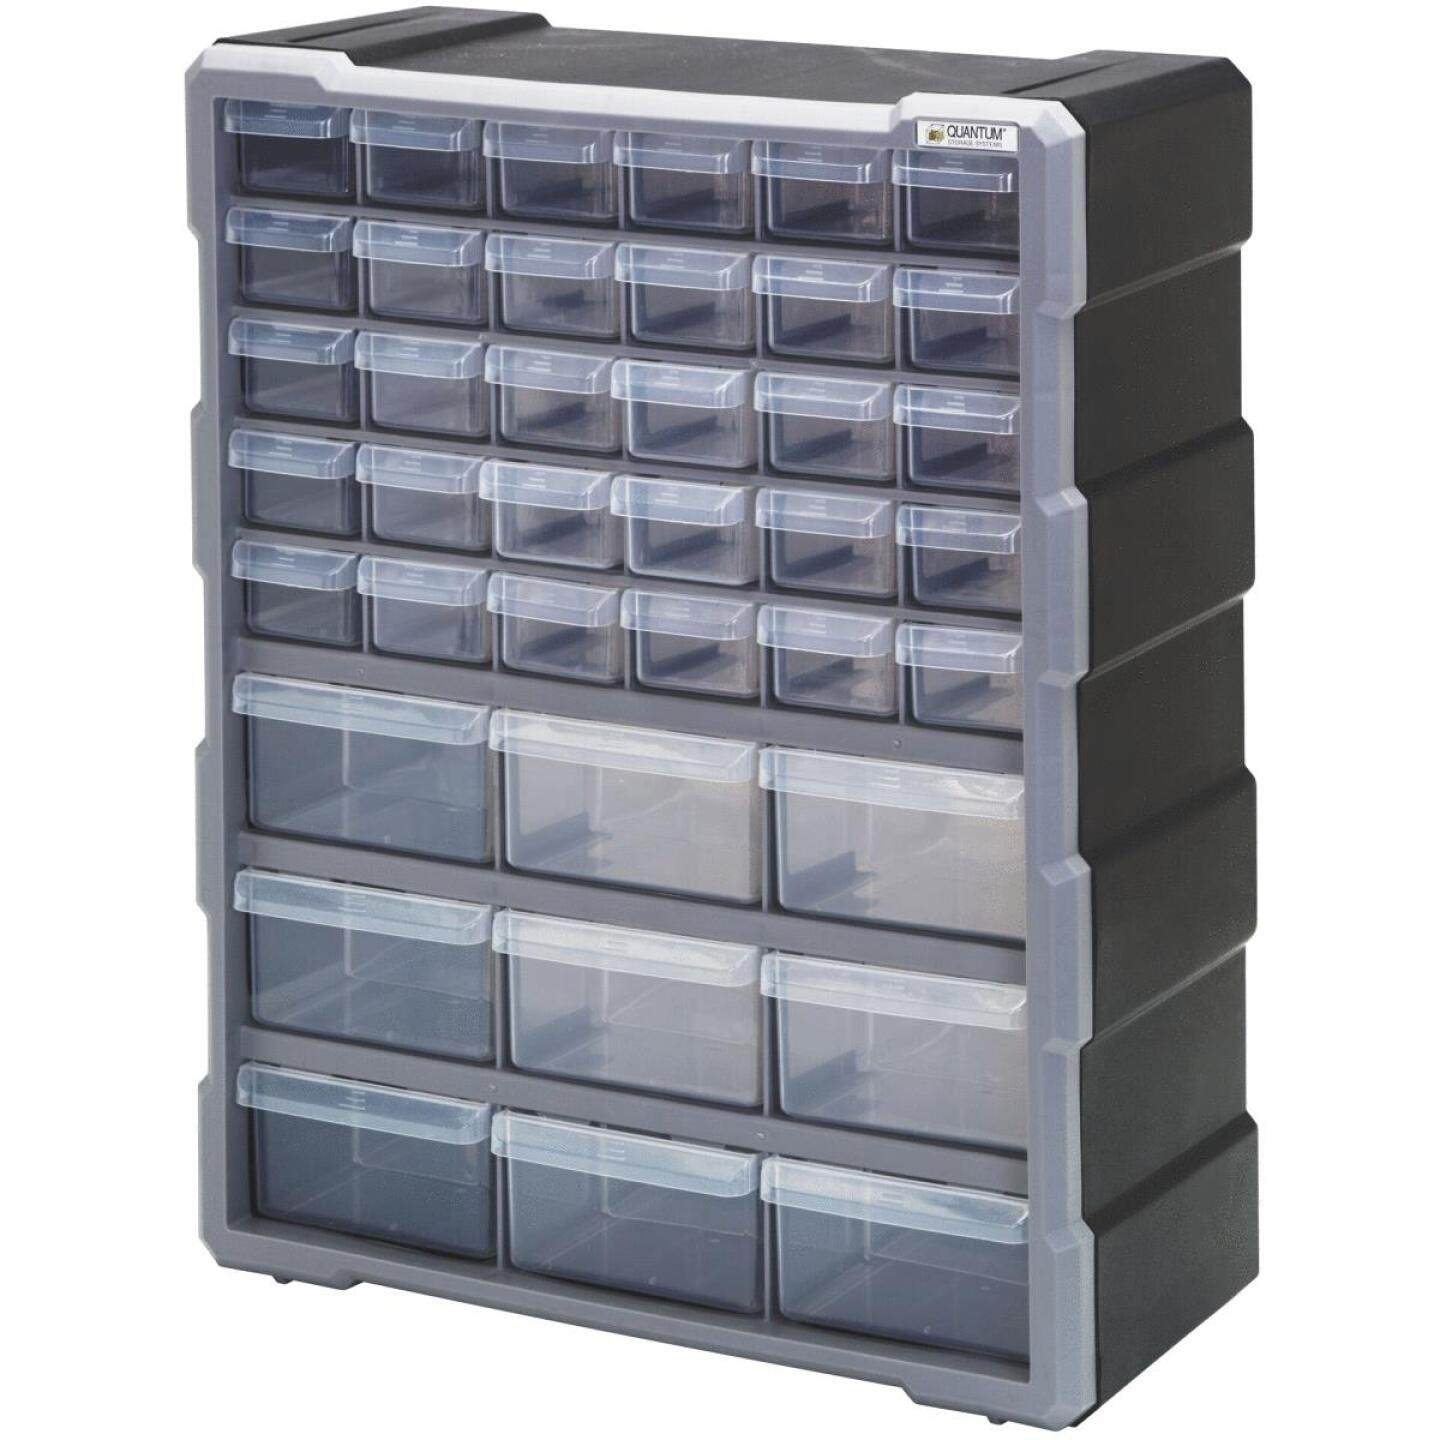 Quantum Storage 15 In. W x 18.75 In. H x 6.25 In. L Small Parts Organizer with 39 Drawers Image 1